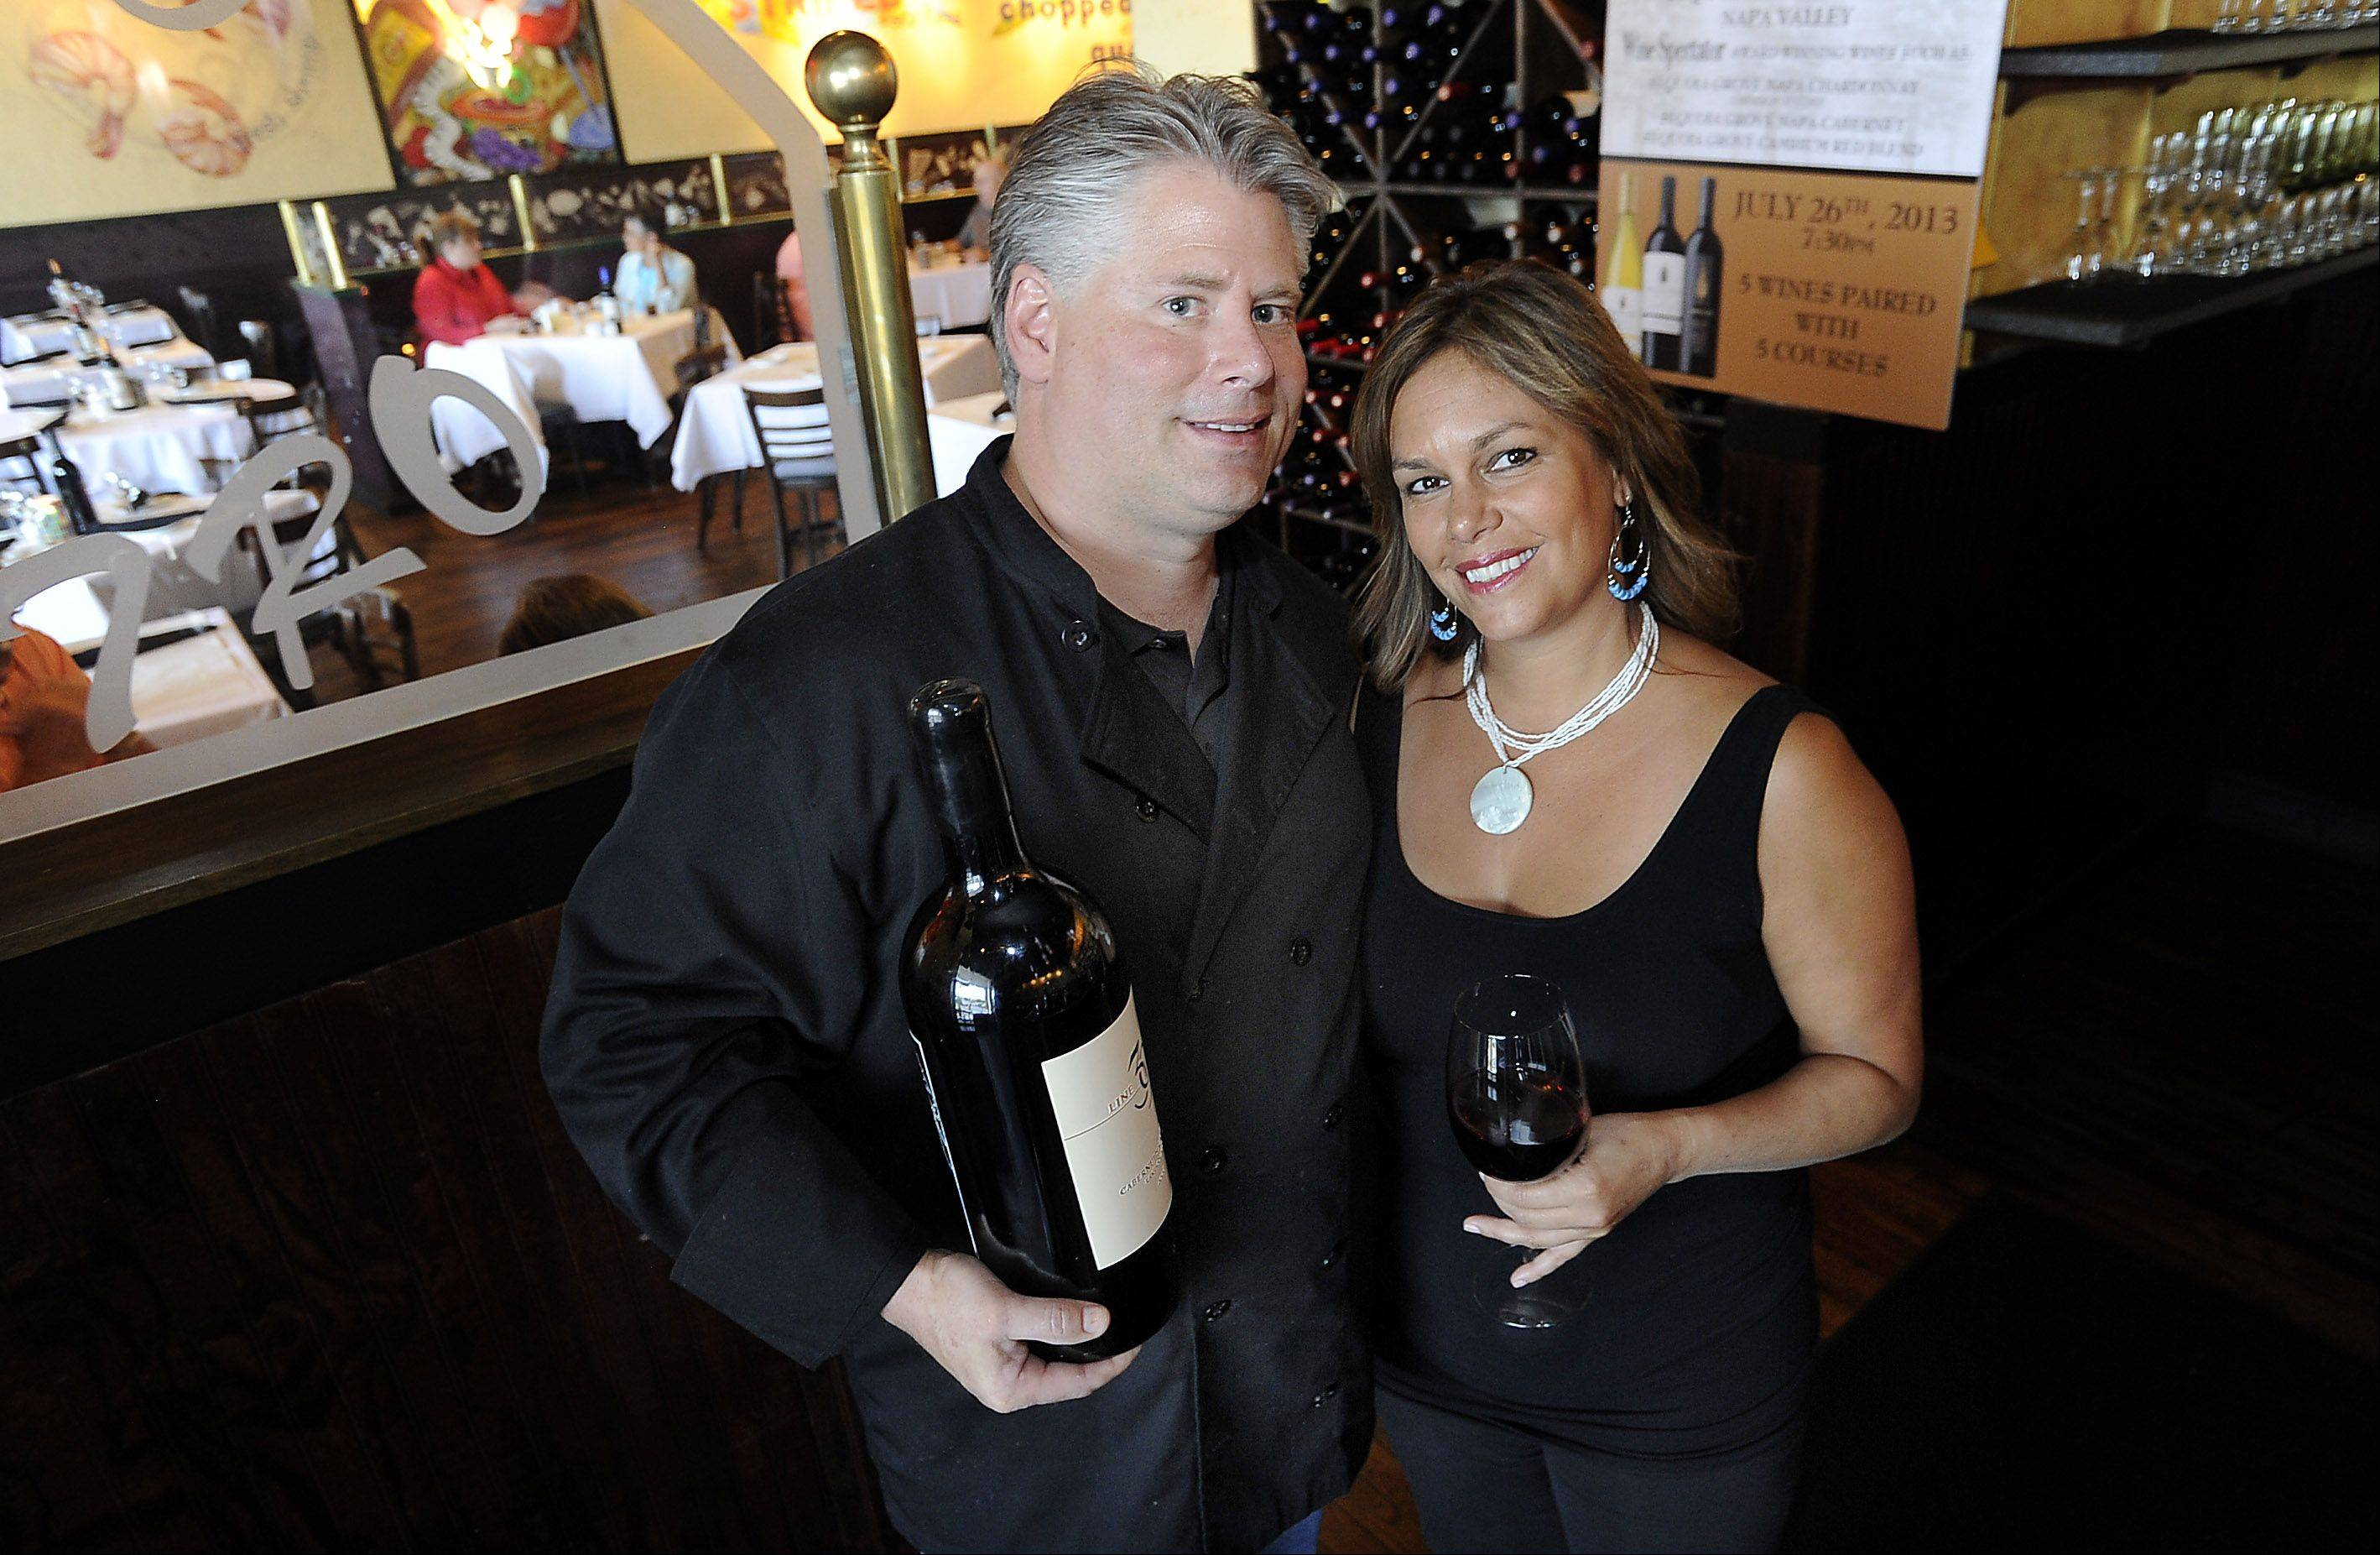 Christopher and Lorraine Barth met in culinary school and together opened Retro Bistro in Mount Prospect 23 years ago.